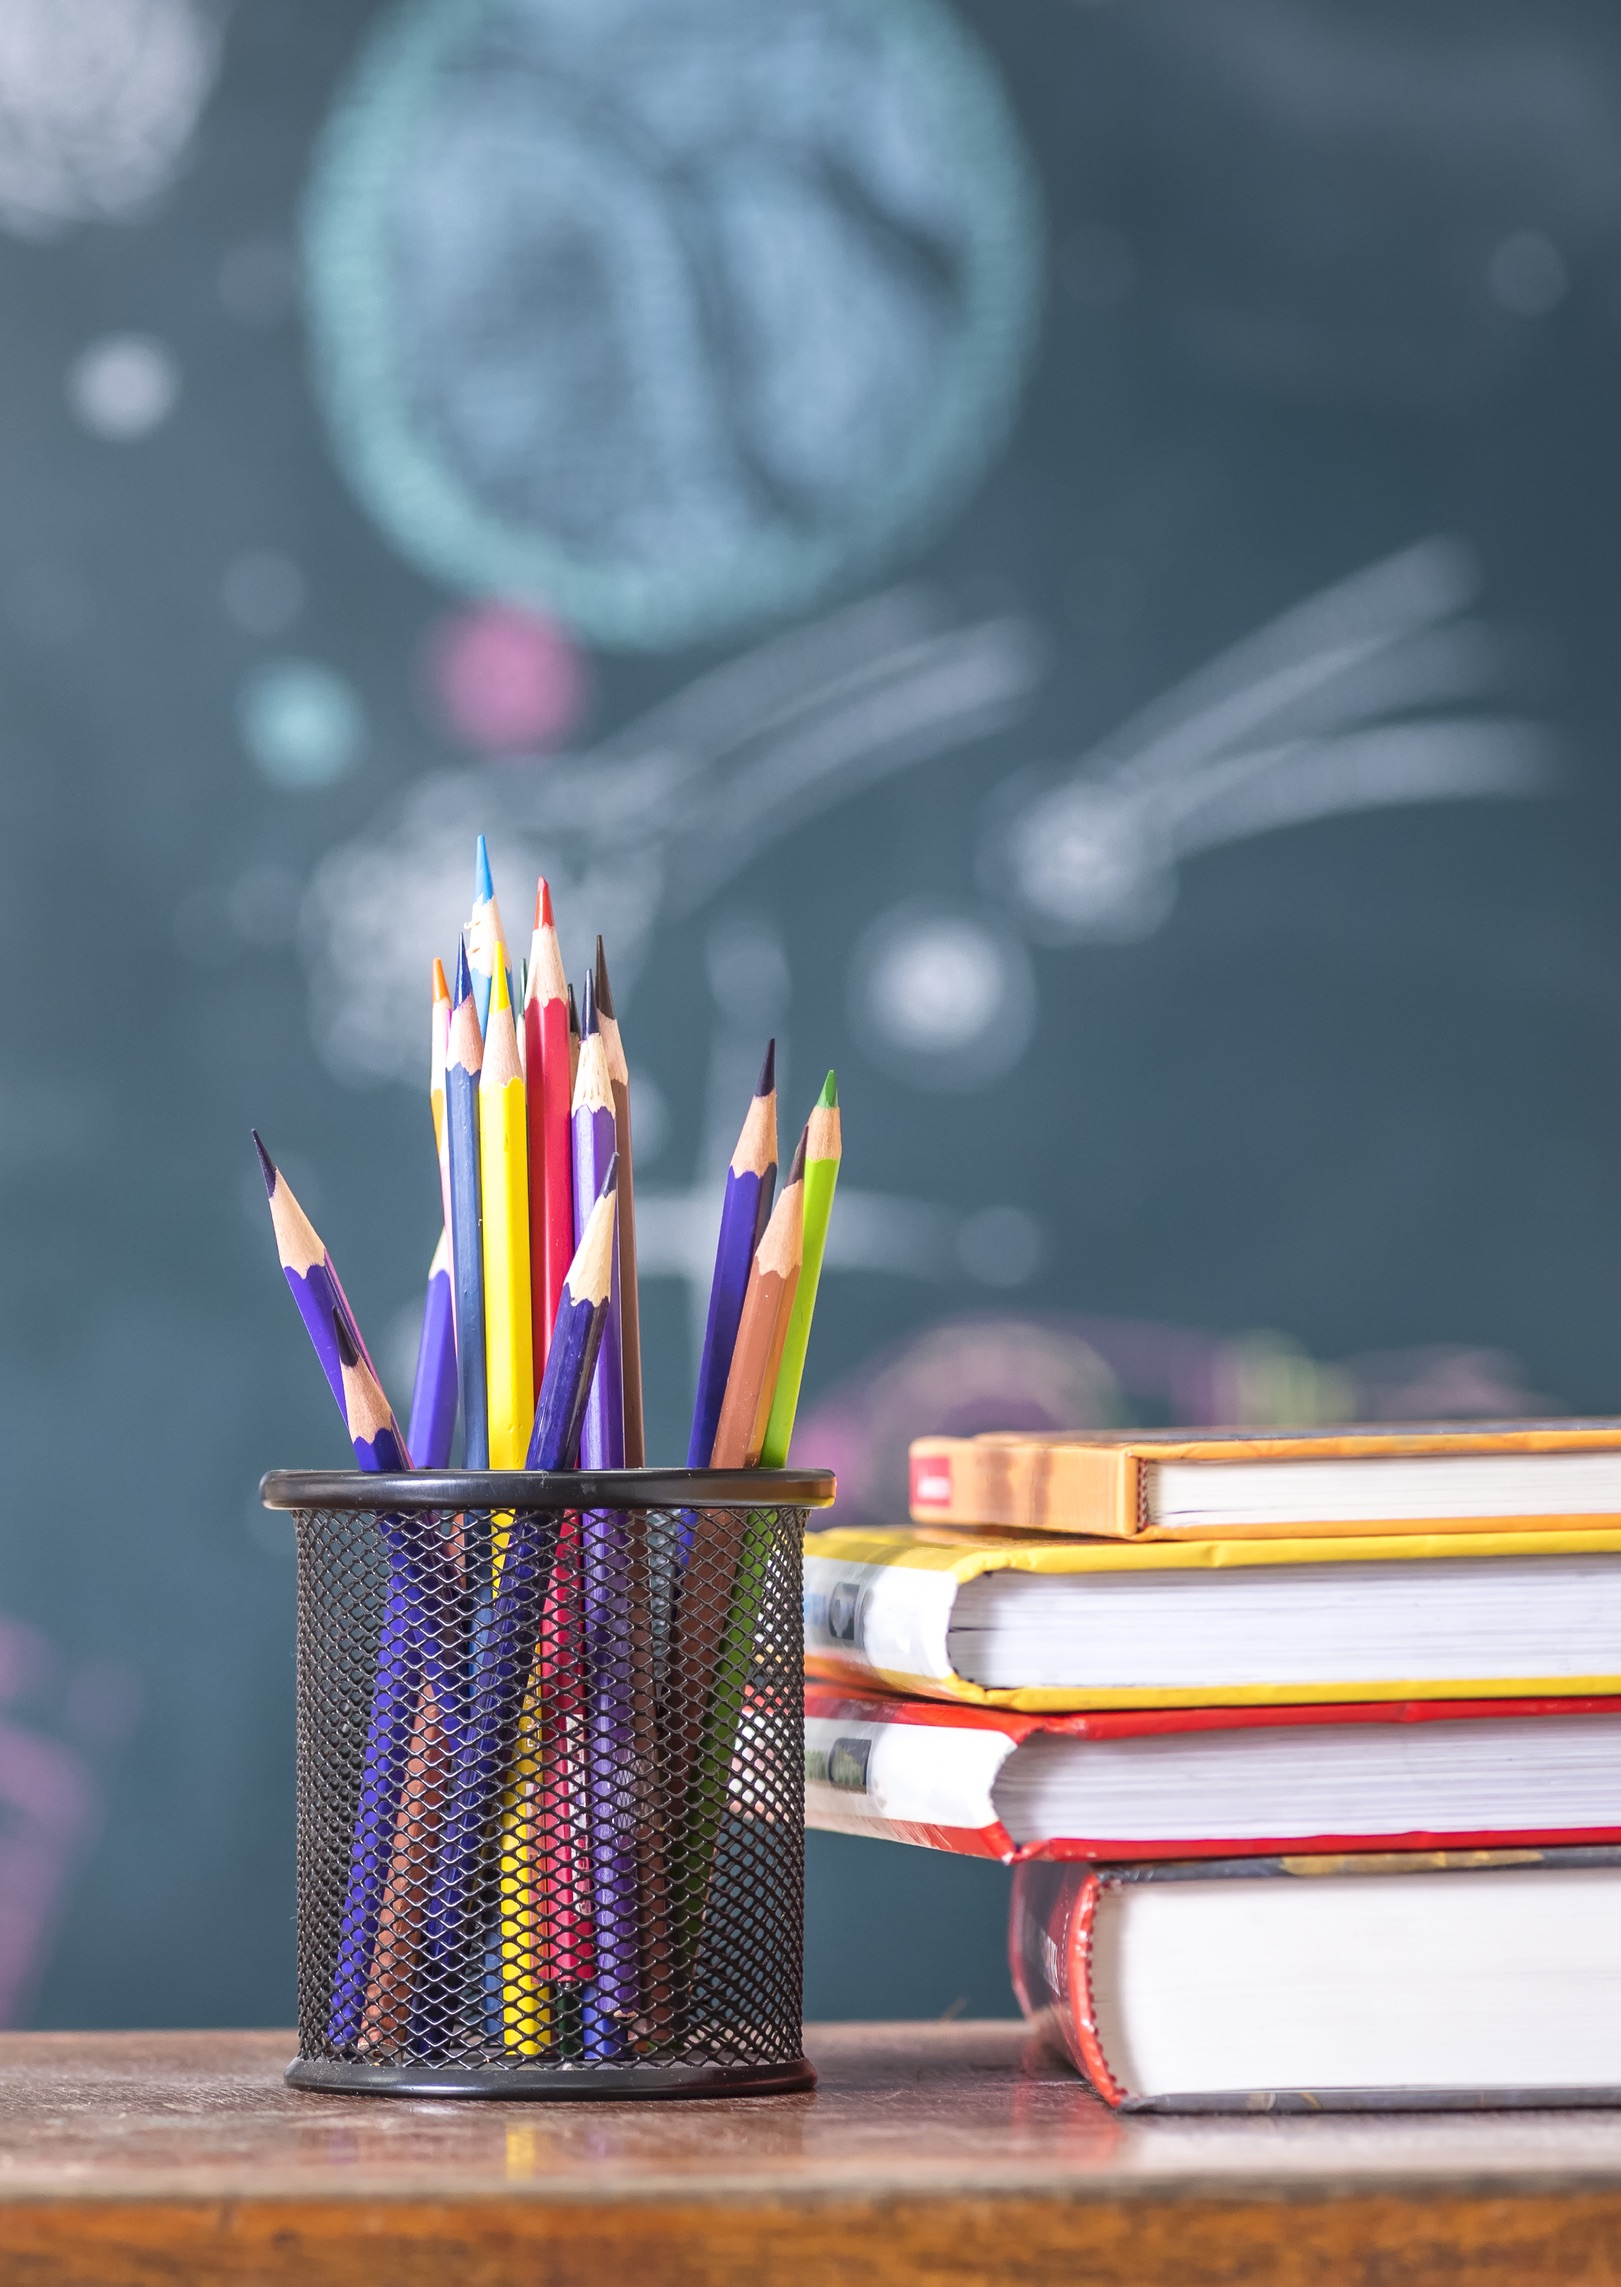 a mesh metal cup of colored pencils sitting next to a stack of school books, with a background of a chalkboard with space images on it